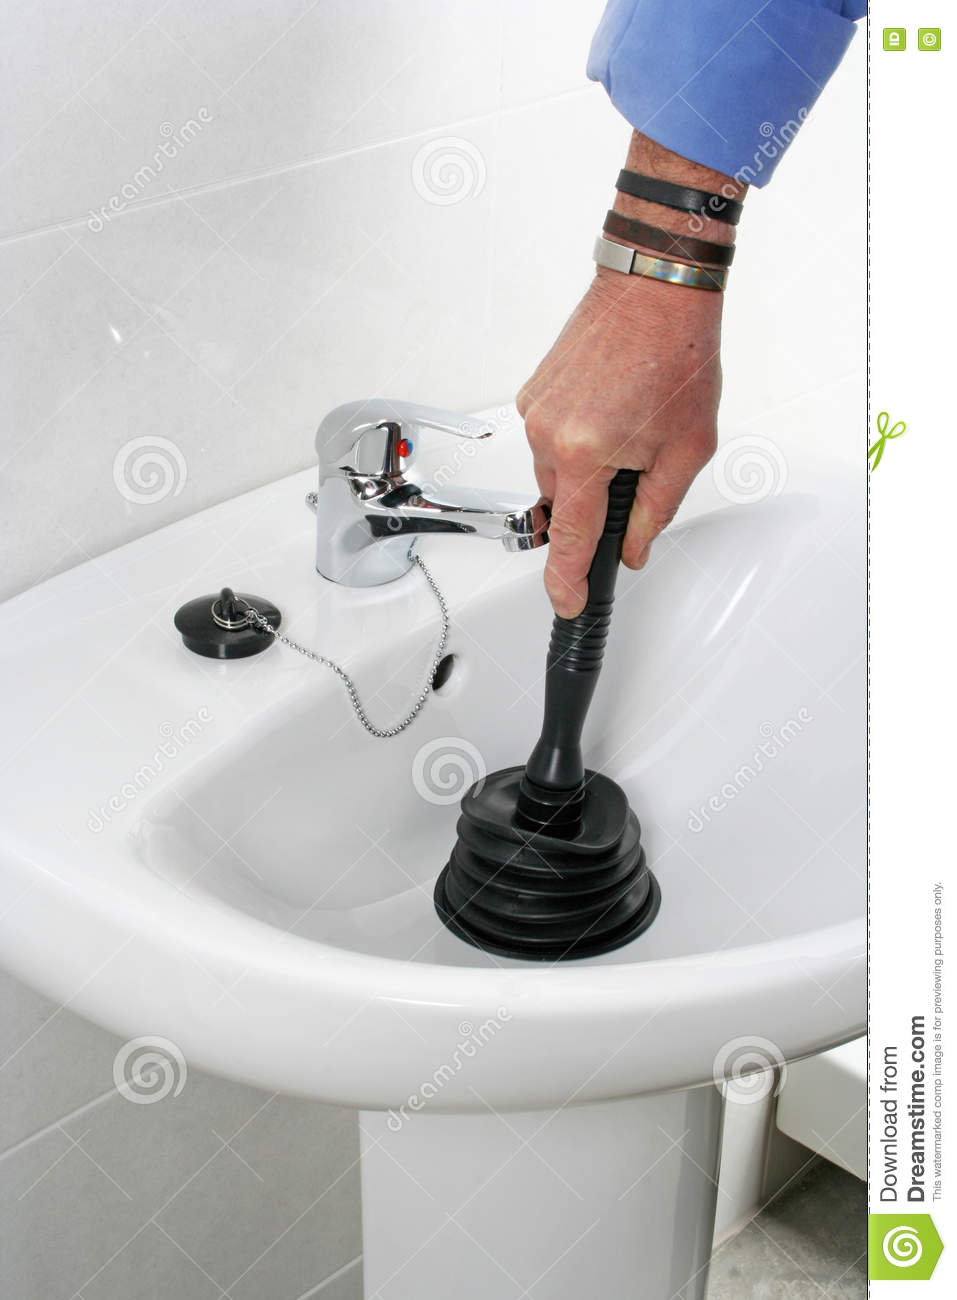 Clogged Sink Stock Photo Image Of Blocked Domestic 73676624